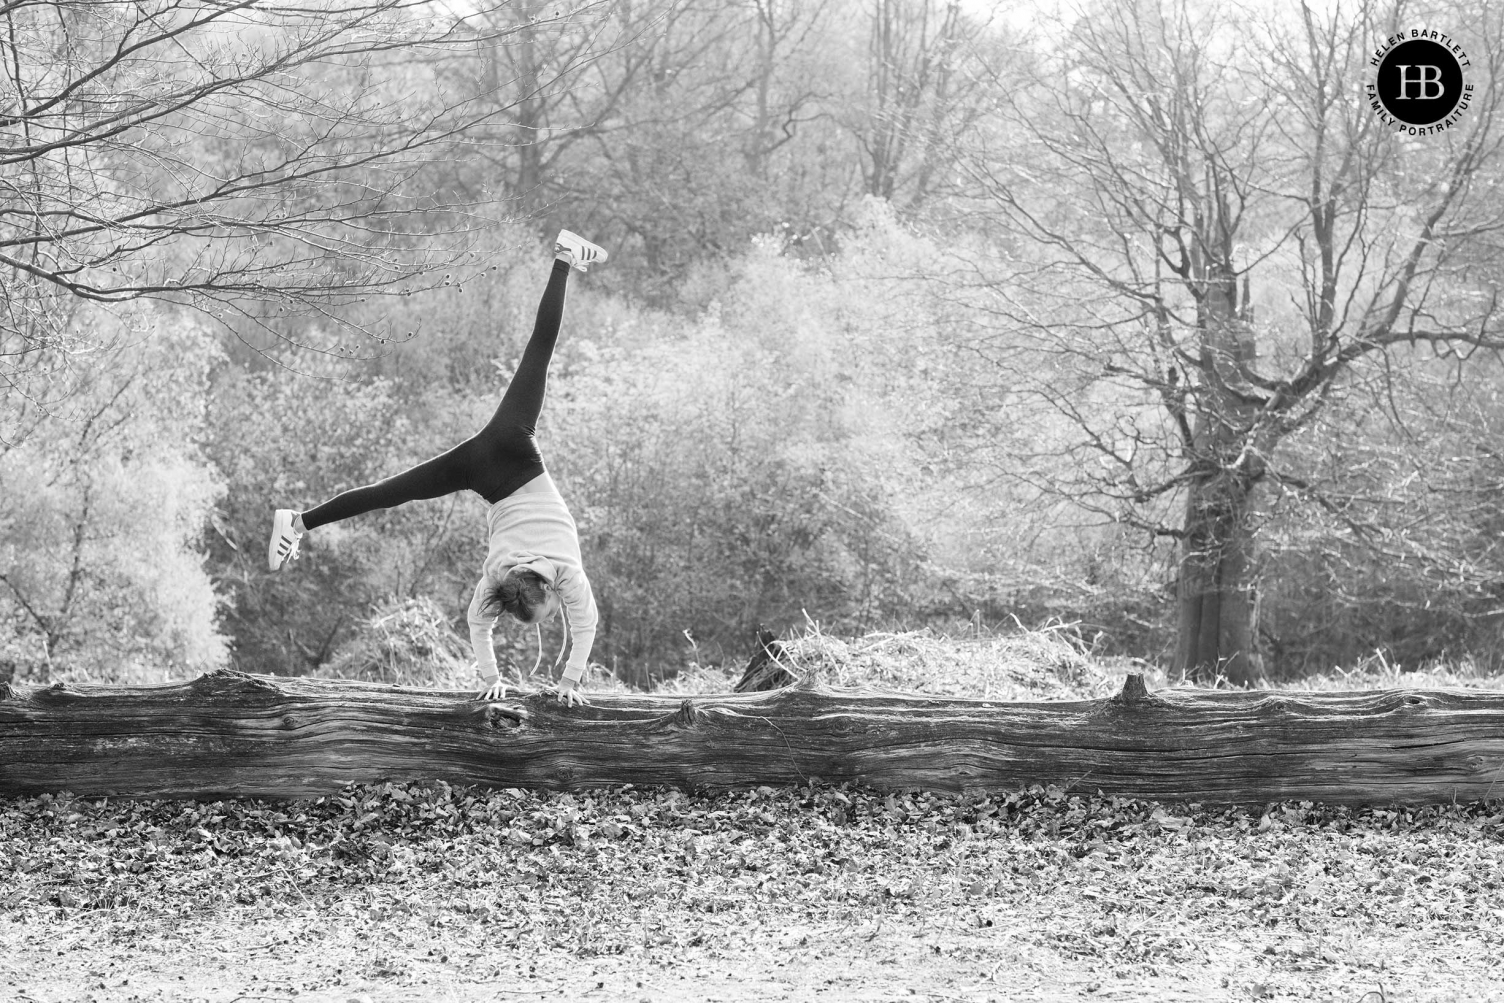 A girl cartwheels across a garden in this black and white photo taken during a family photoshoot.